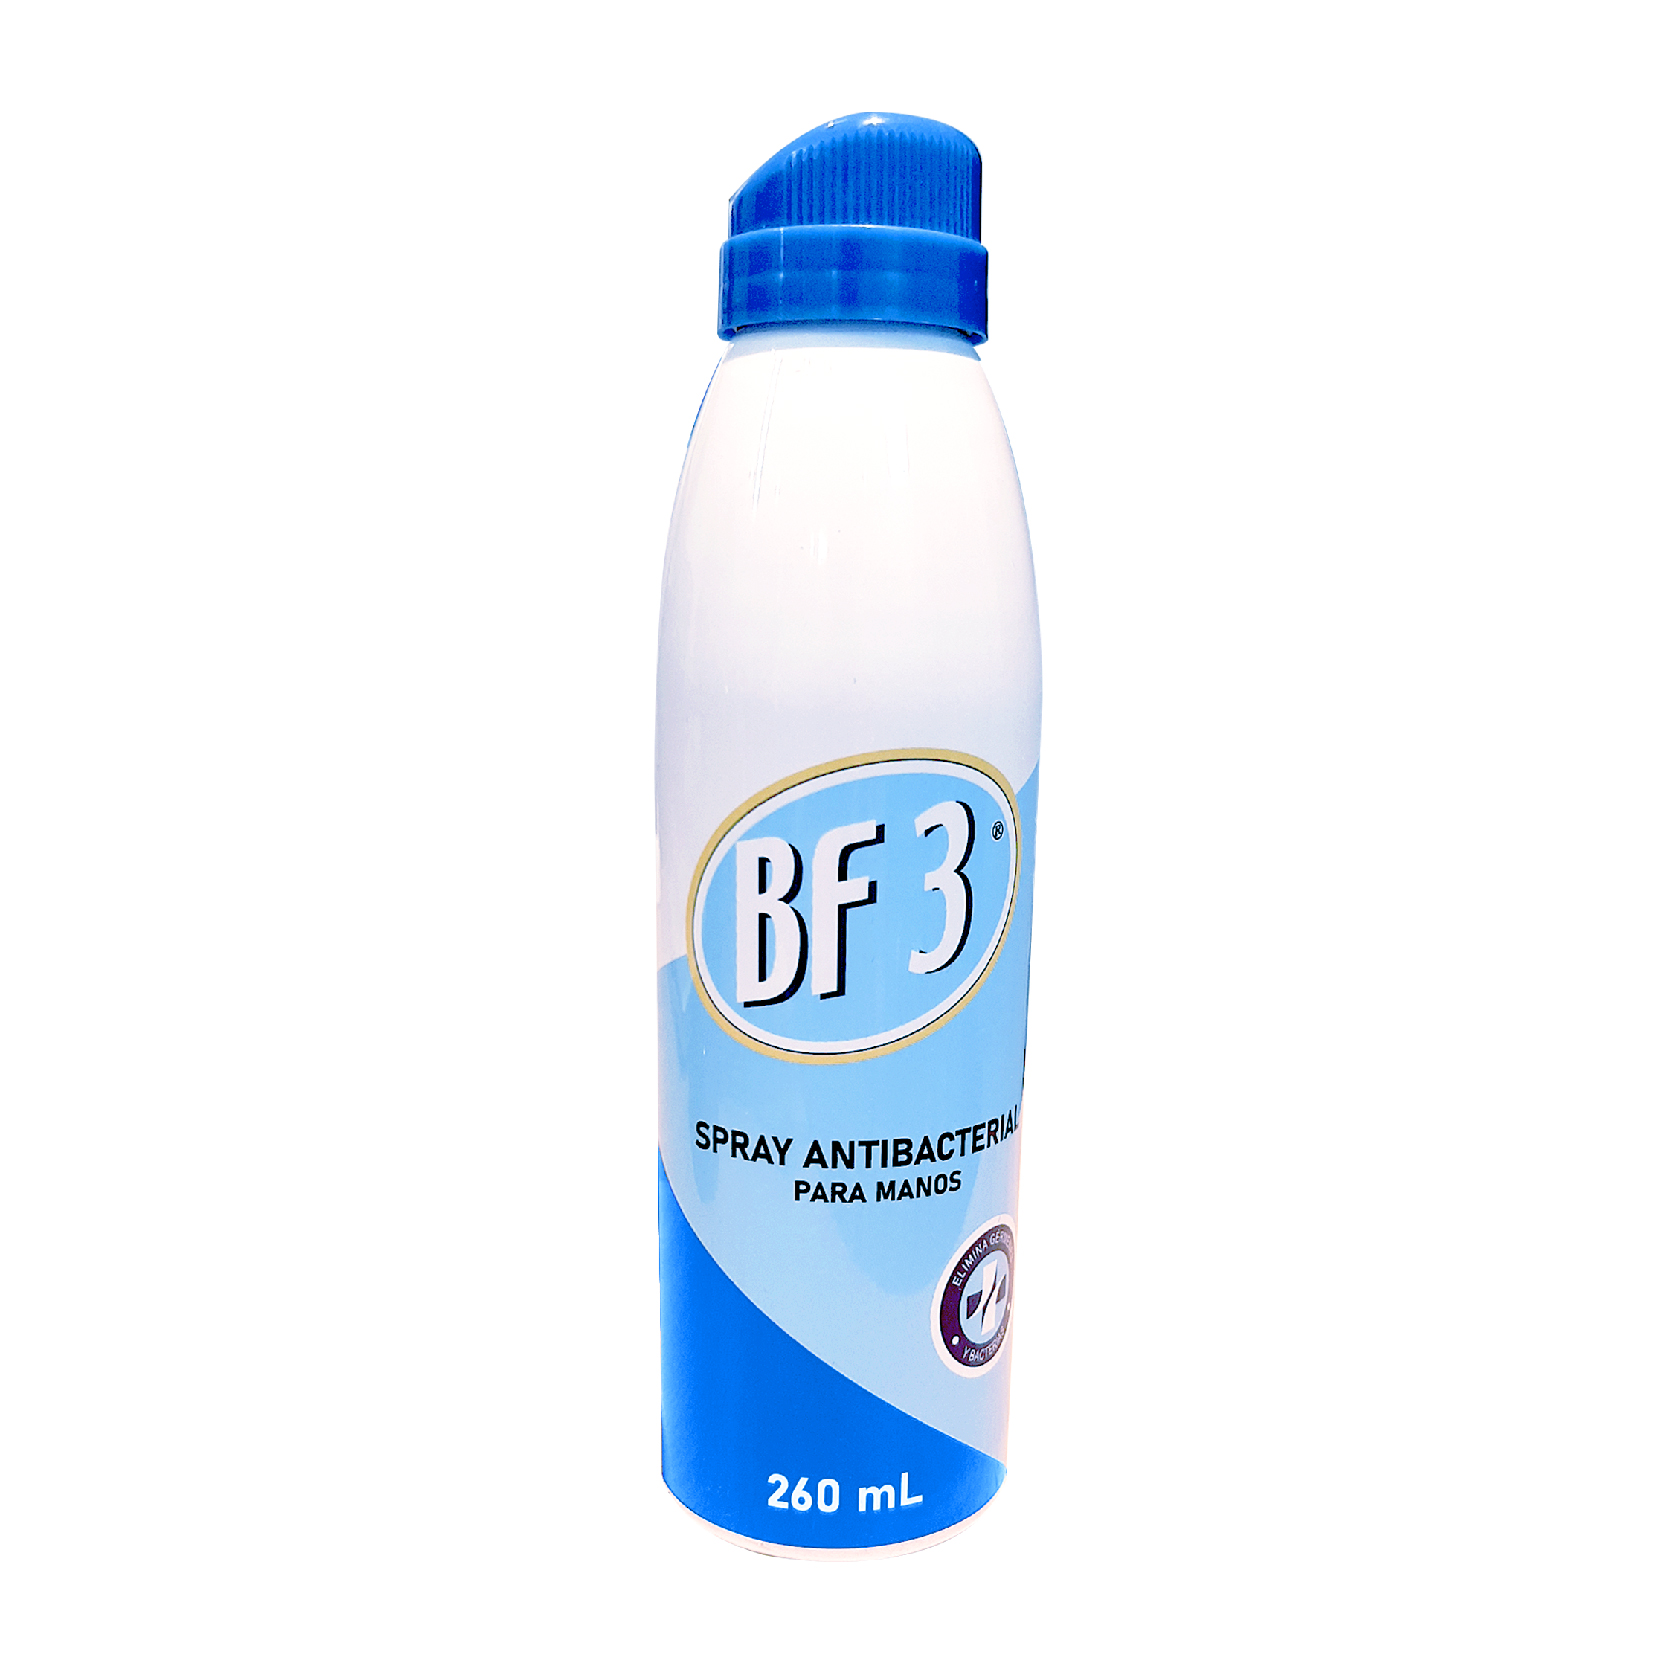 BF-3 ALCOHOL GLICERINADO PARA MANOS 65.6% X 118ML